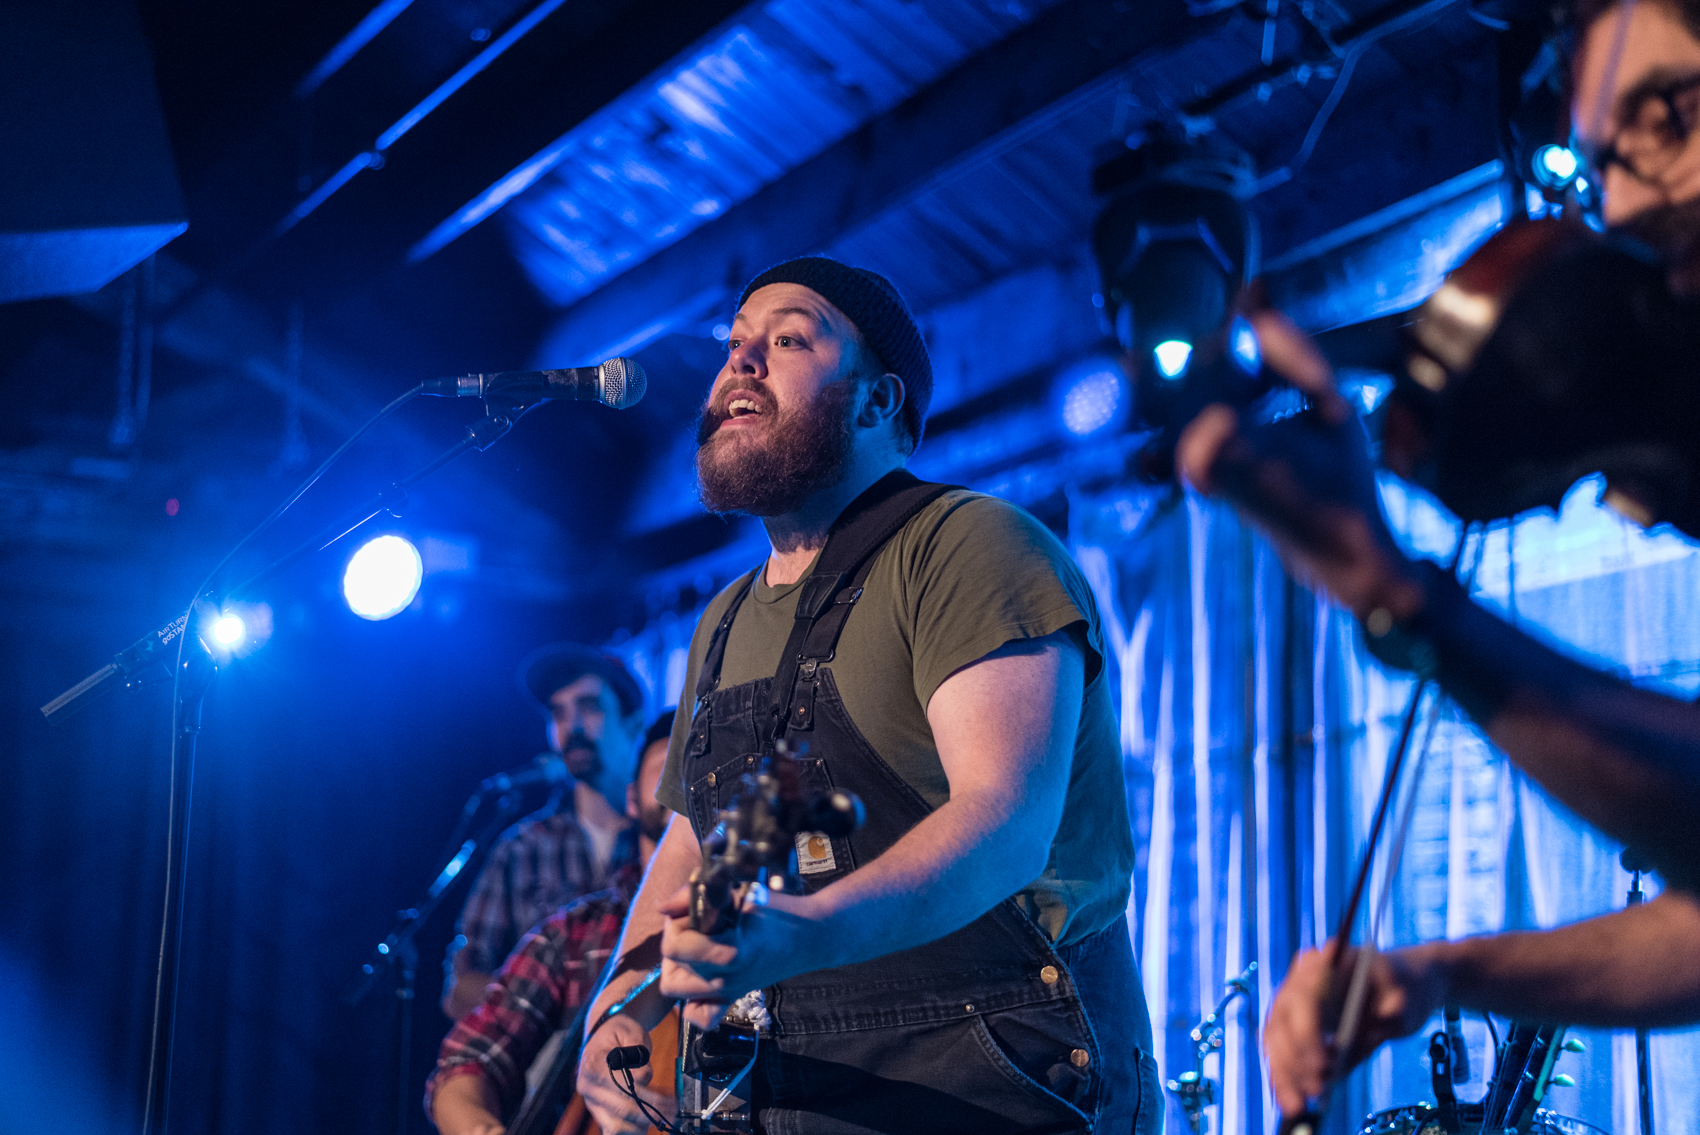 Al Scorch onstage at SPACE Evanston Feb 11 2018 with Tyler Childers Photo by Victoria Sanders